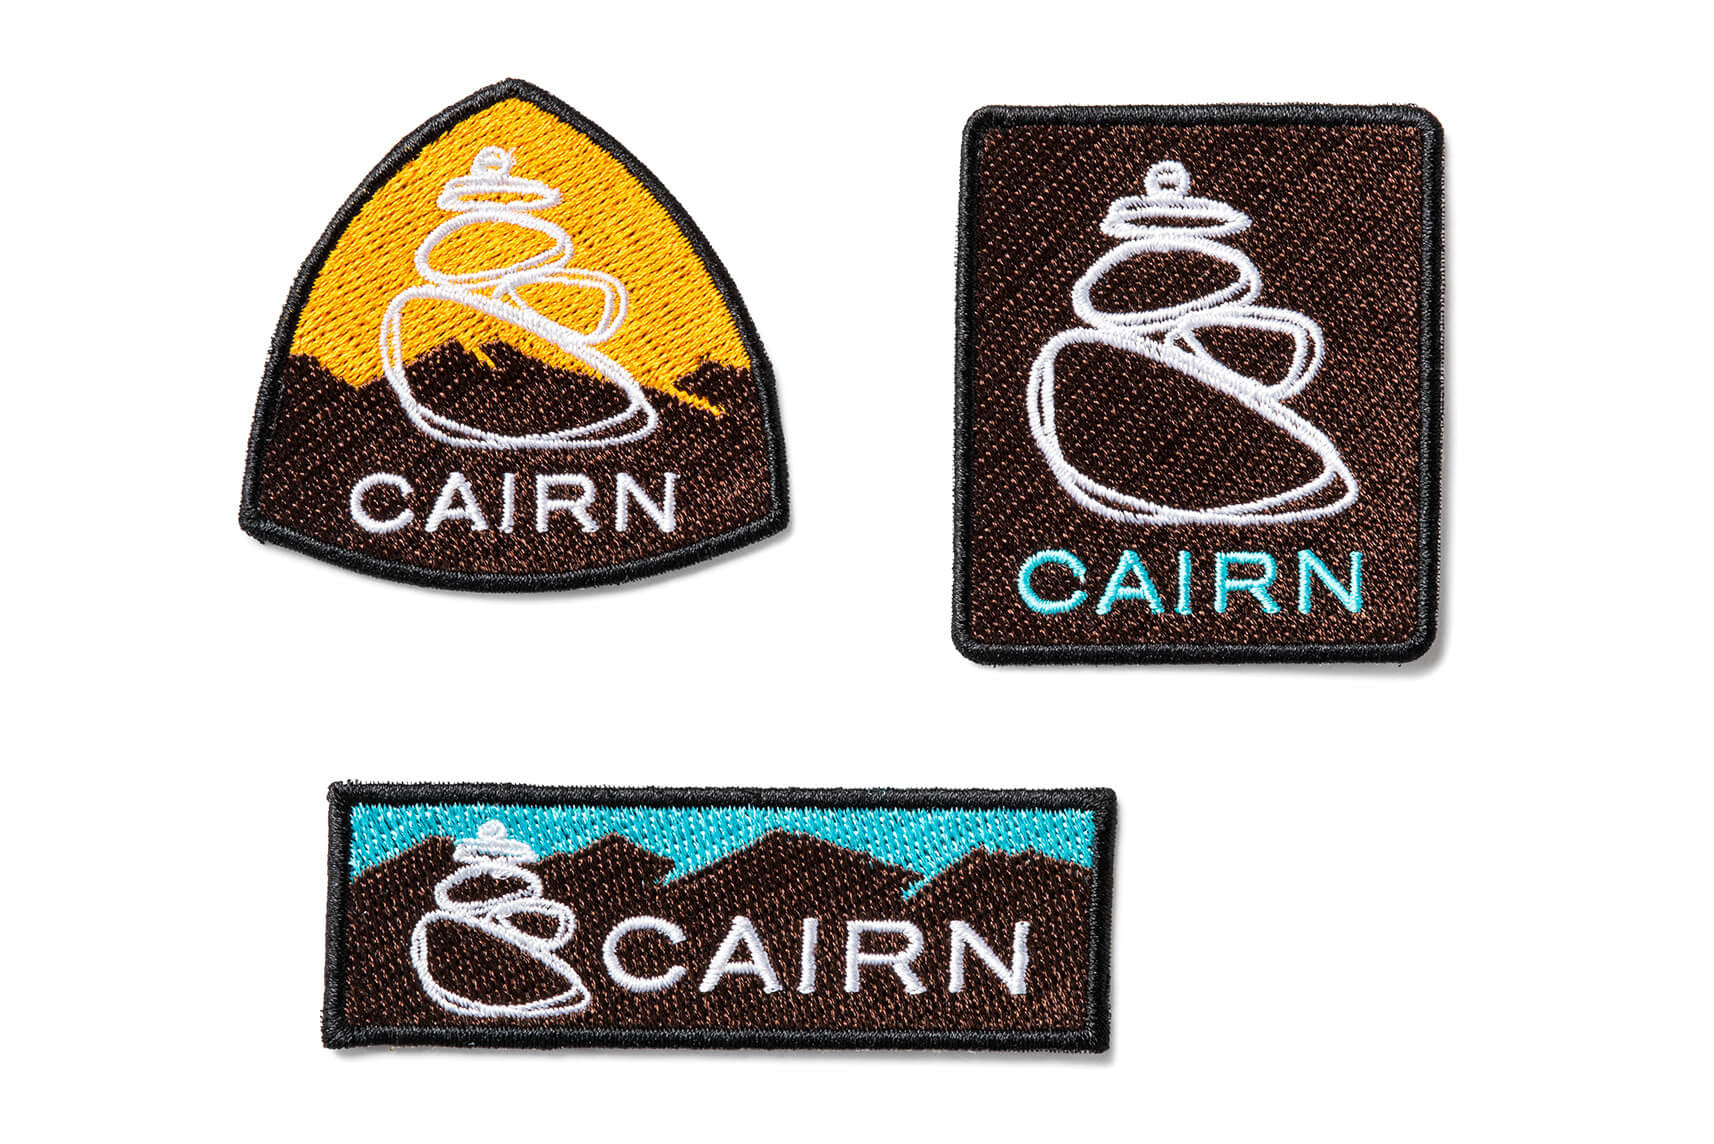 Cairn Patches